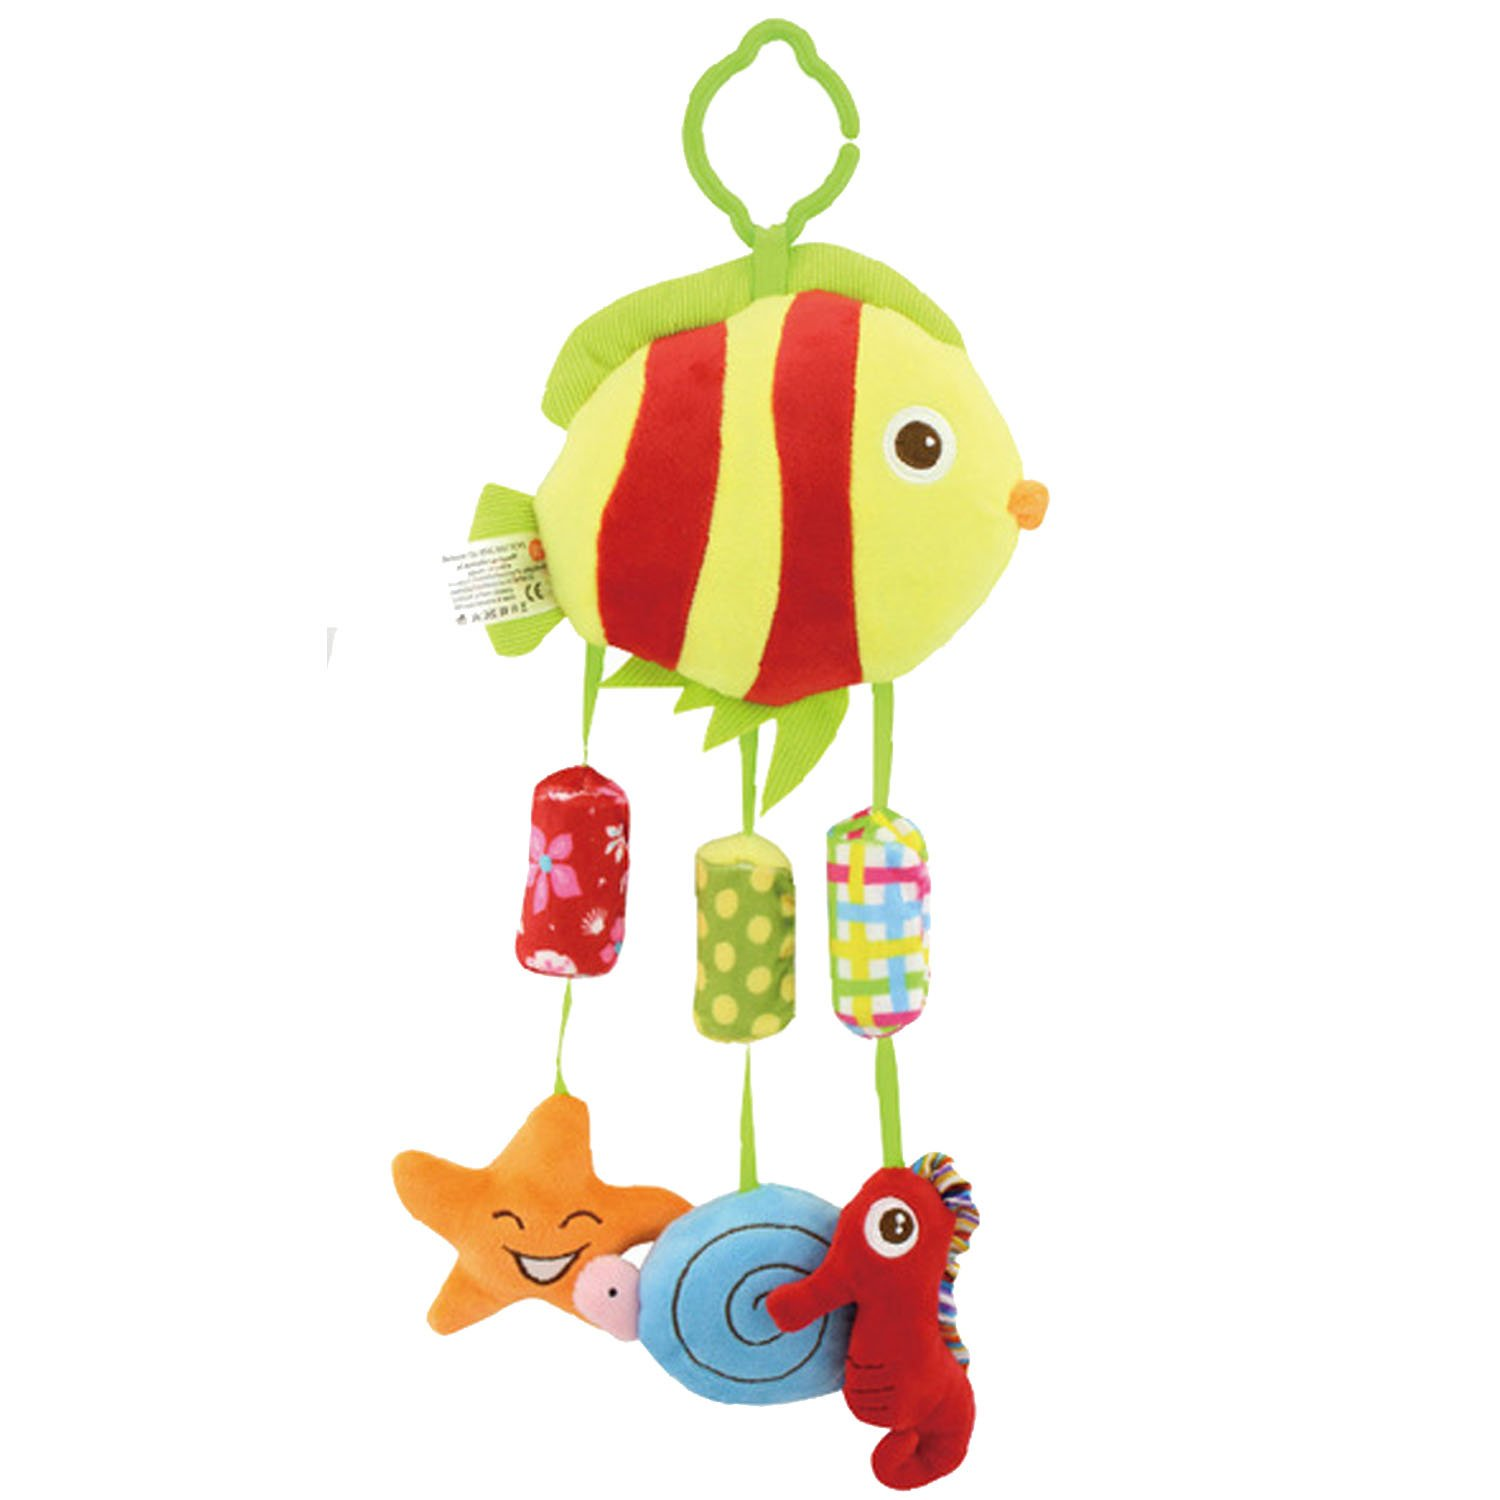 Elisona-Cute Funny Cartoon Animals Plush Baby Hanging Bells Toy Clip On Baby Carriage Crib Bed Stroller Hanging Toy Doll Elephant Style